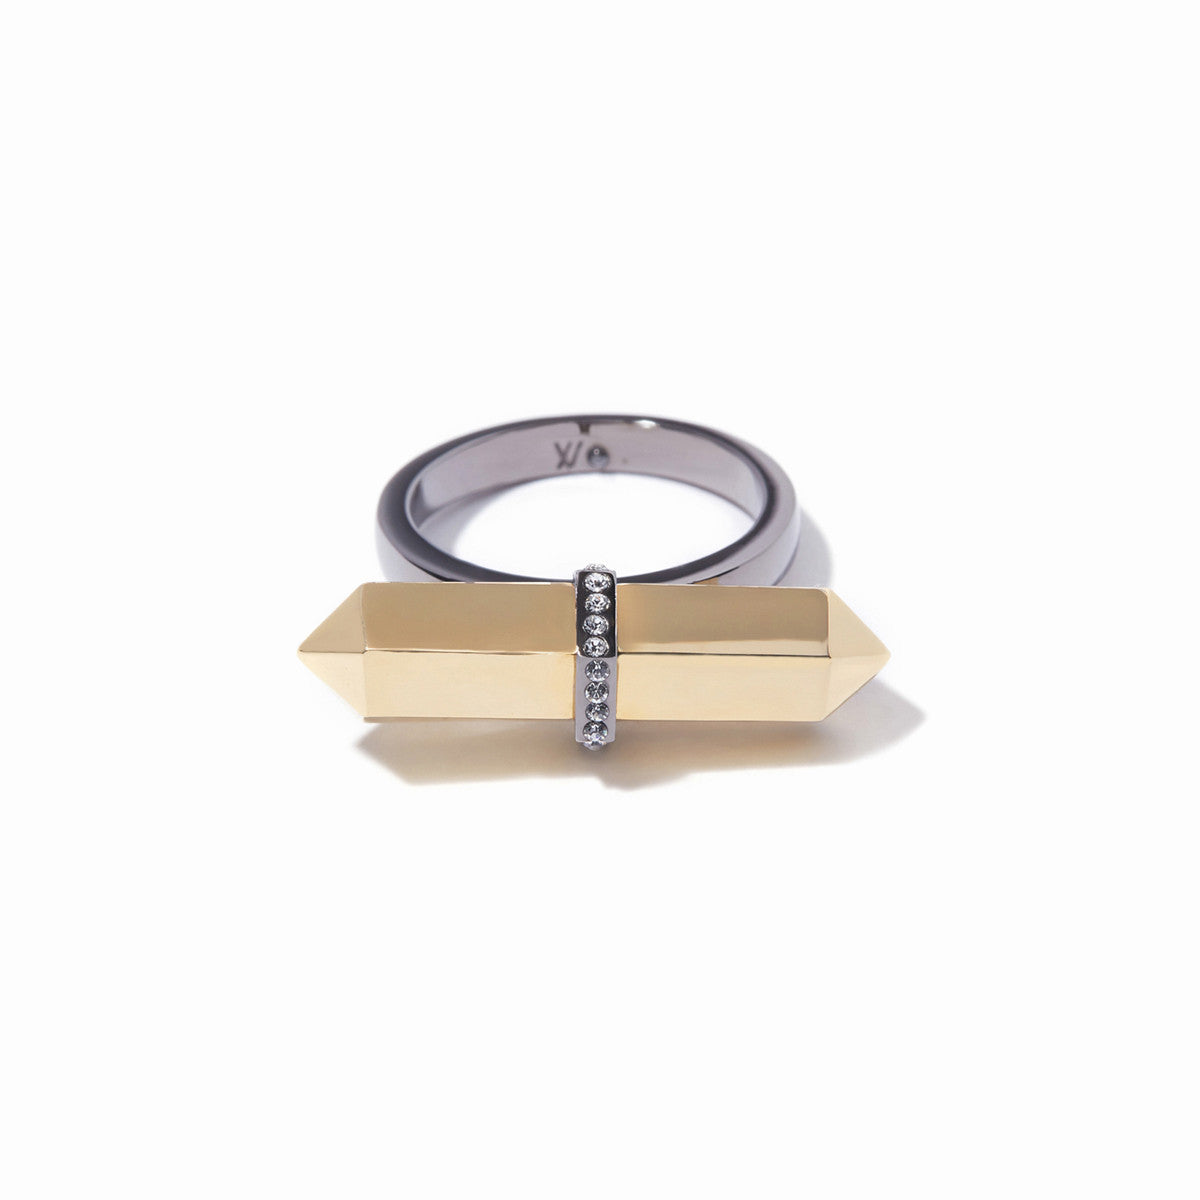 Colette Statement Ring - 2 Tone Gold and Hematite